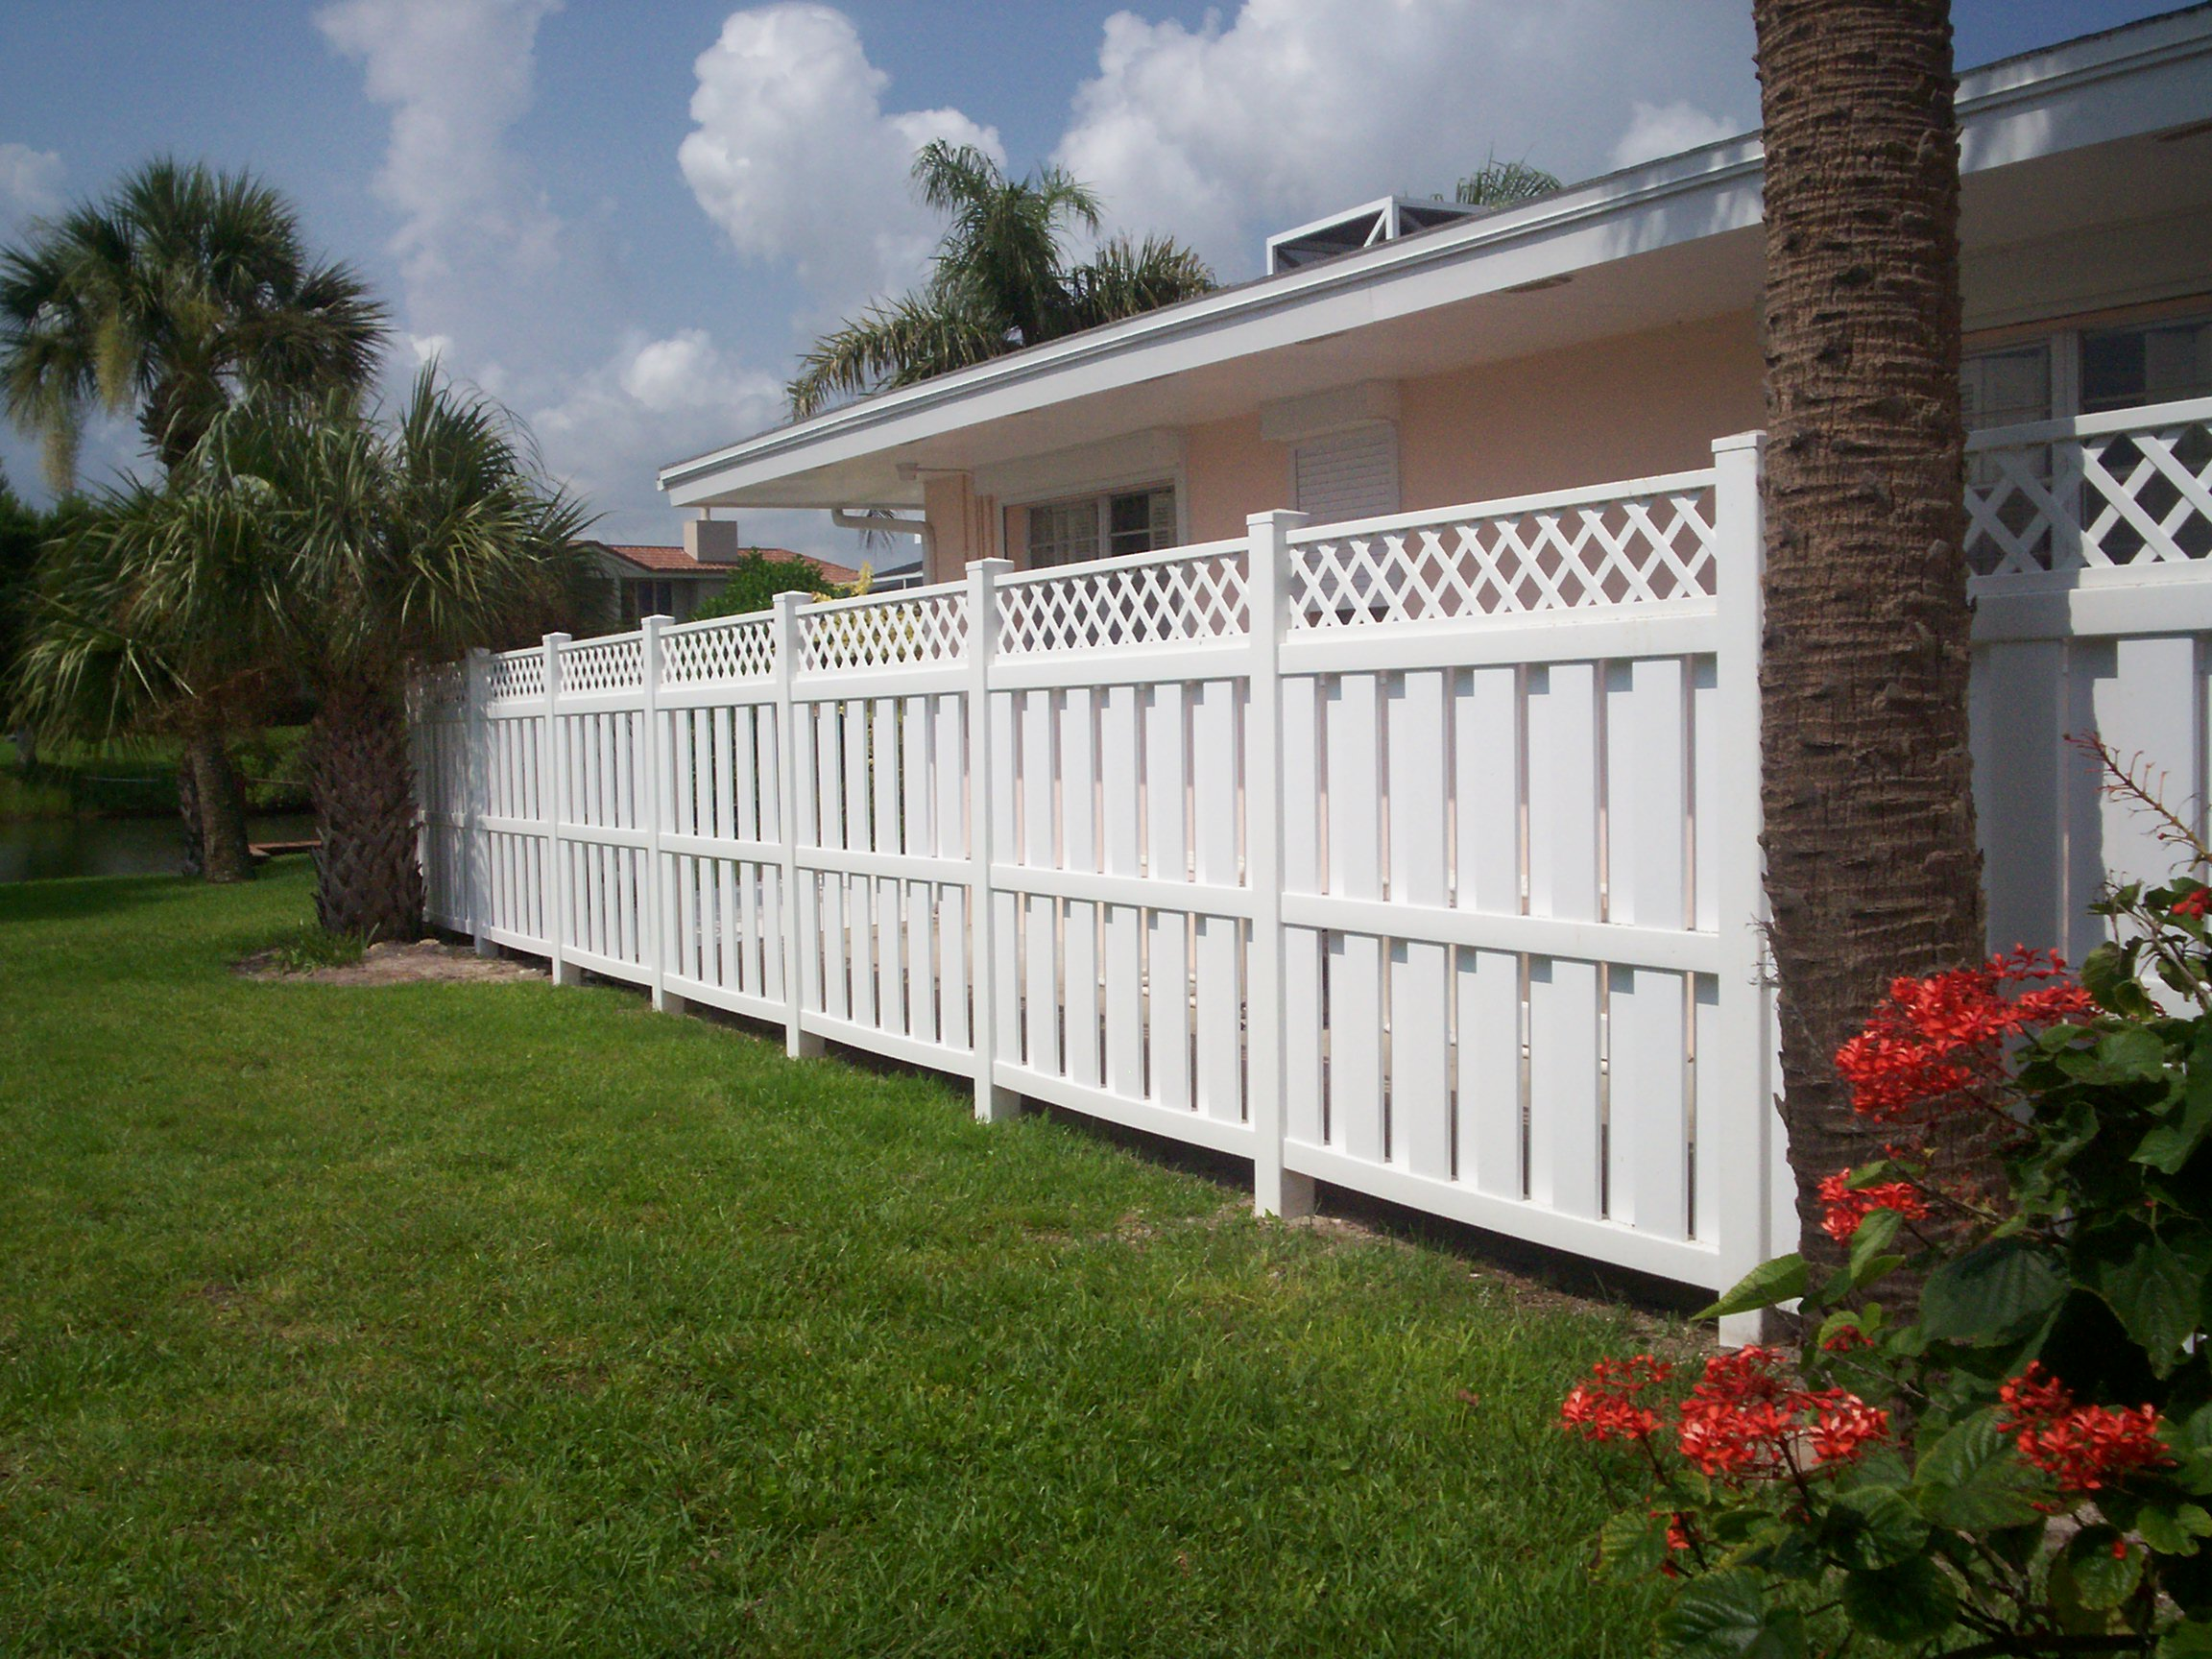 Carrie S Fence Of Palm Bay Inc Palm Bay Fl 32905